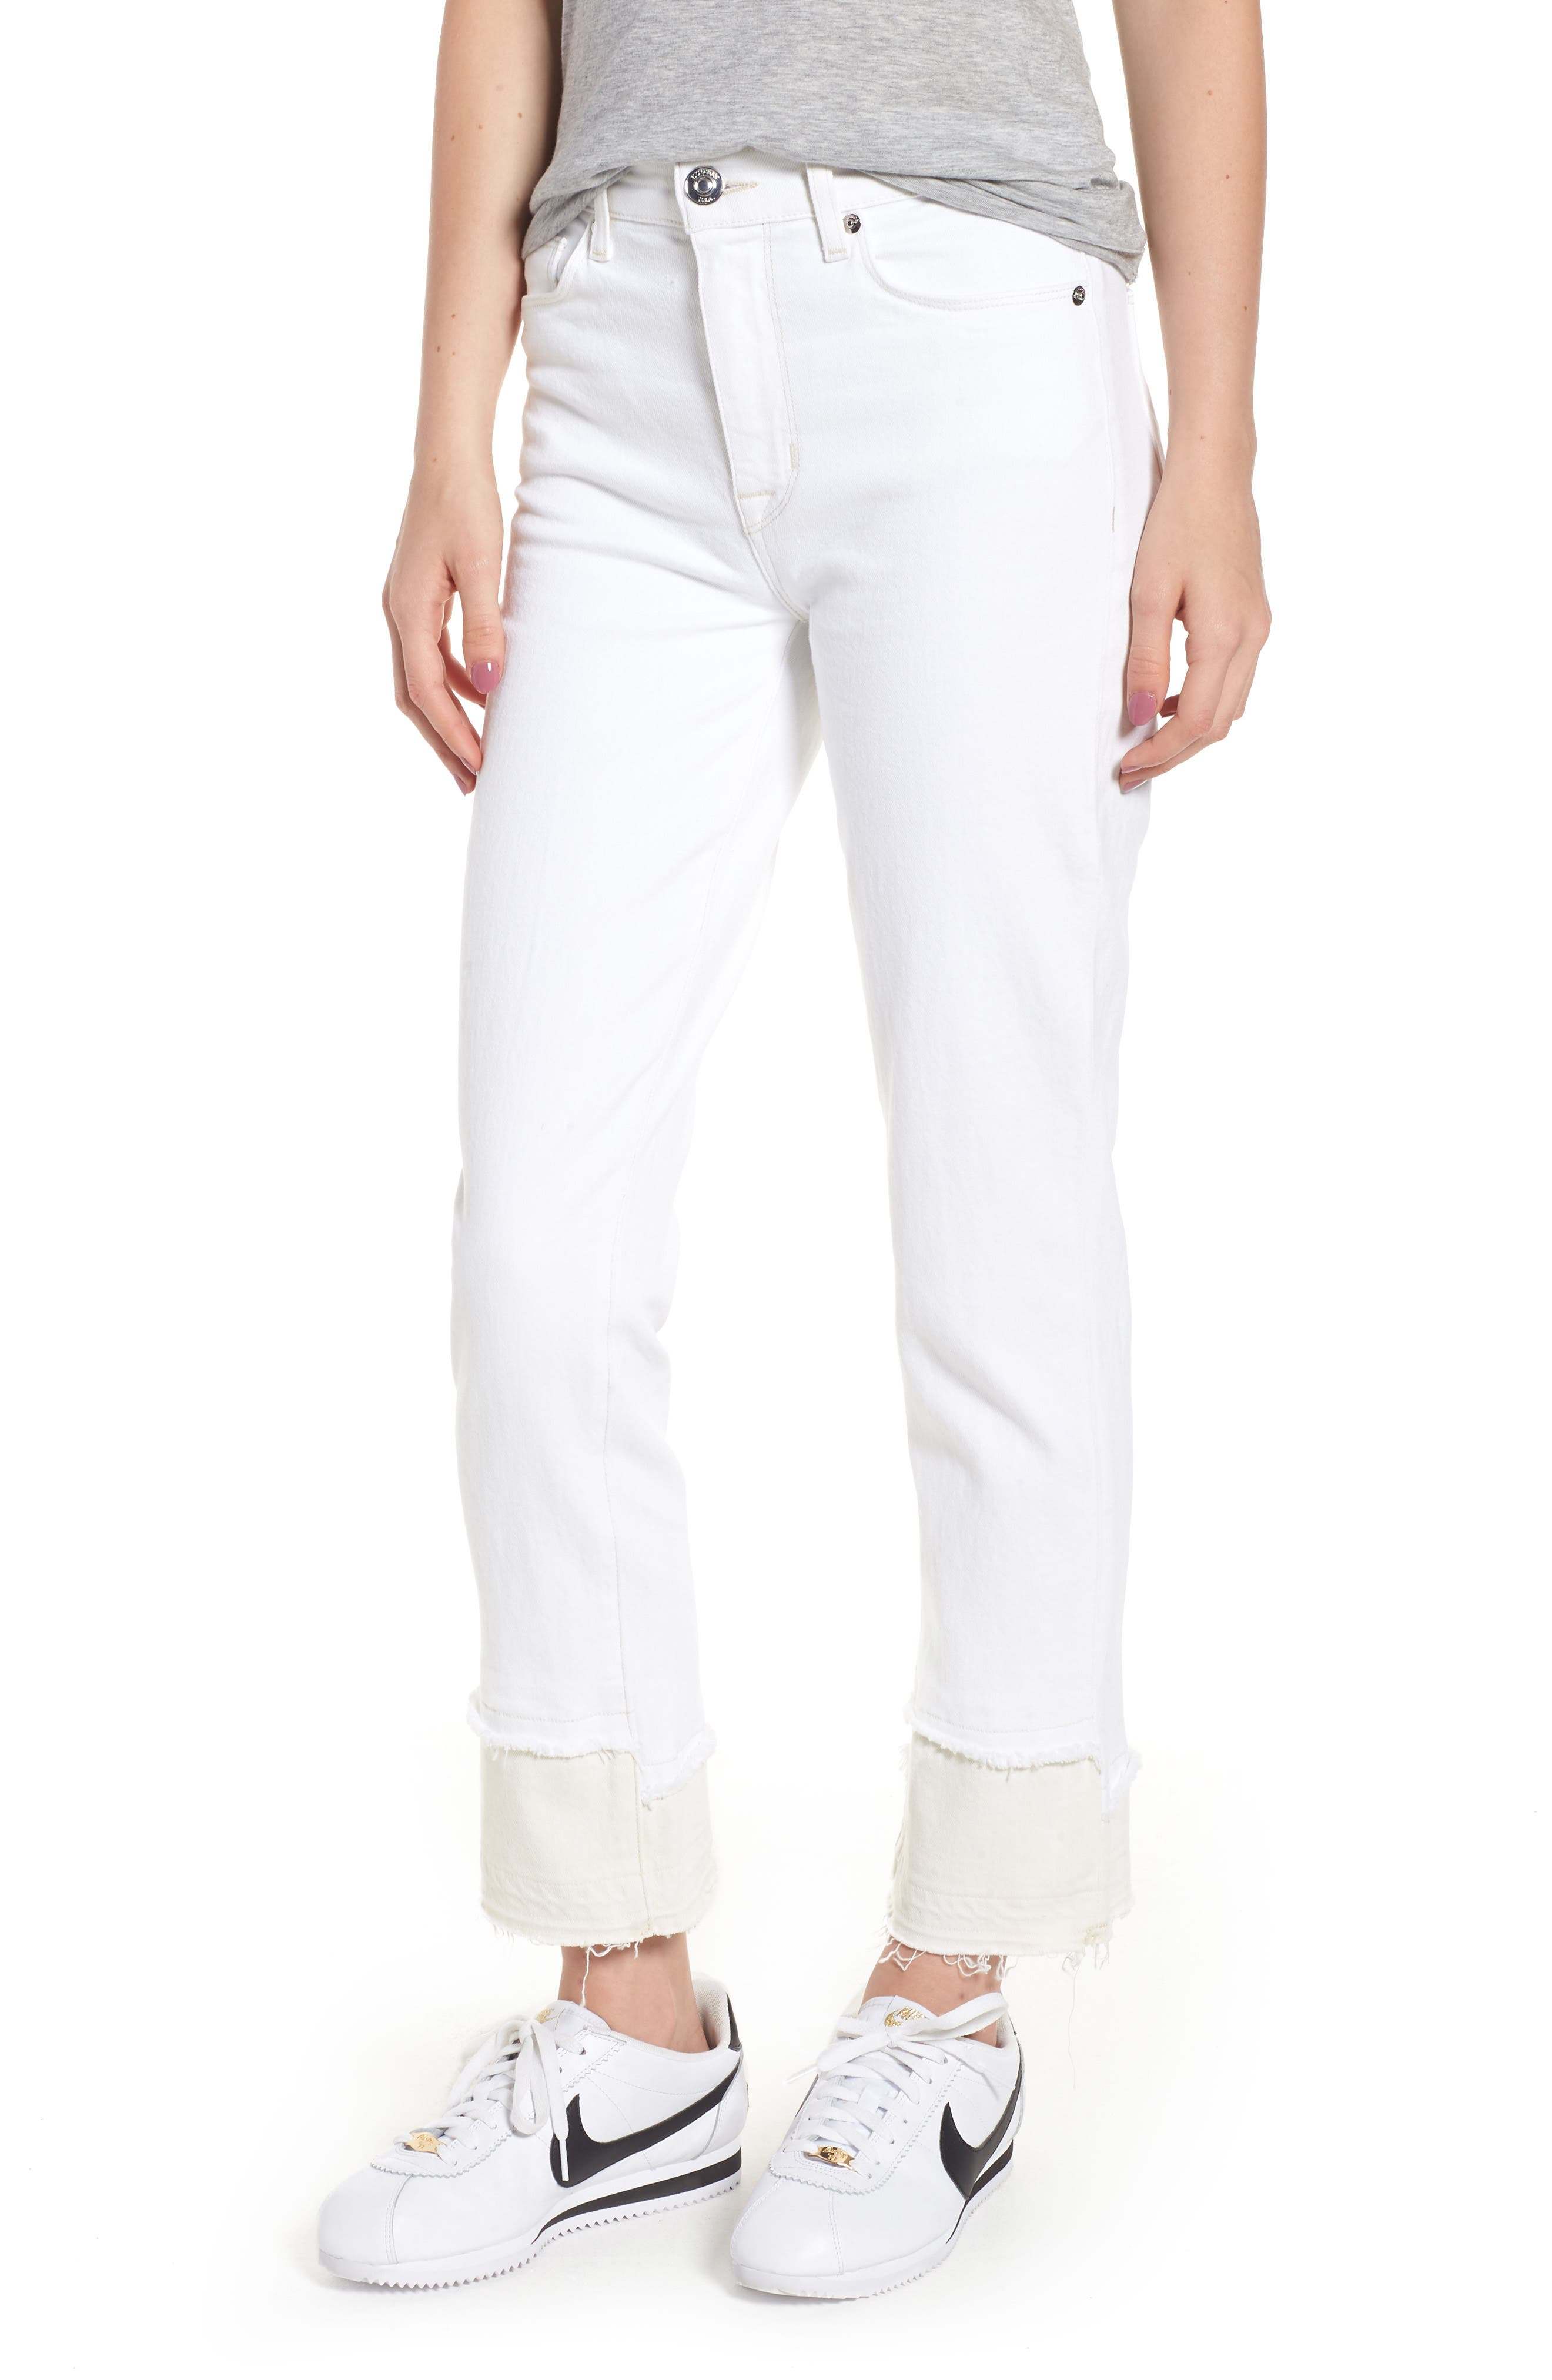 Zoeey High Waist Crop Straight Leg Jeans,                             Main thumbnail 1, color,                             Stepped White